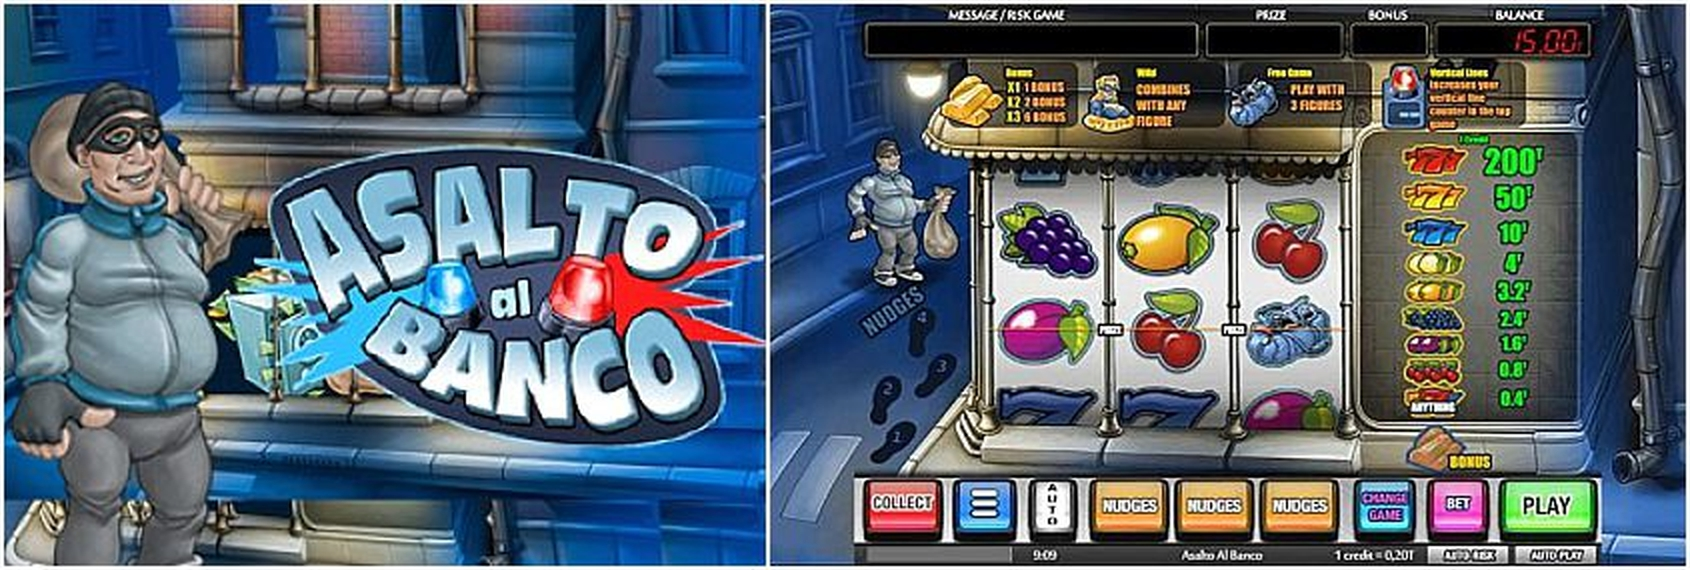 The Asalto al banco Online Slot Demo Game by MGA